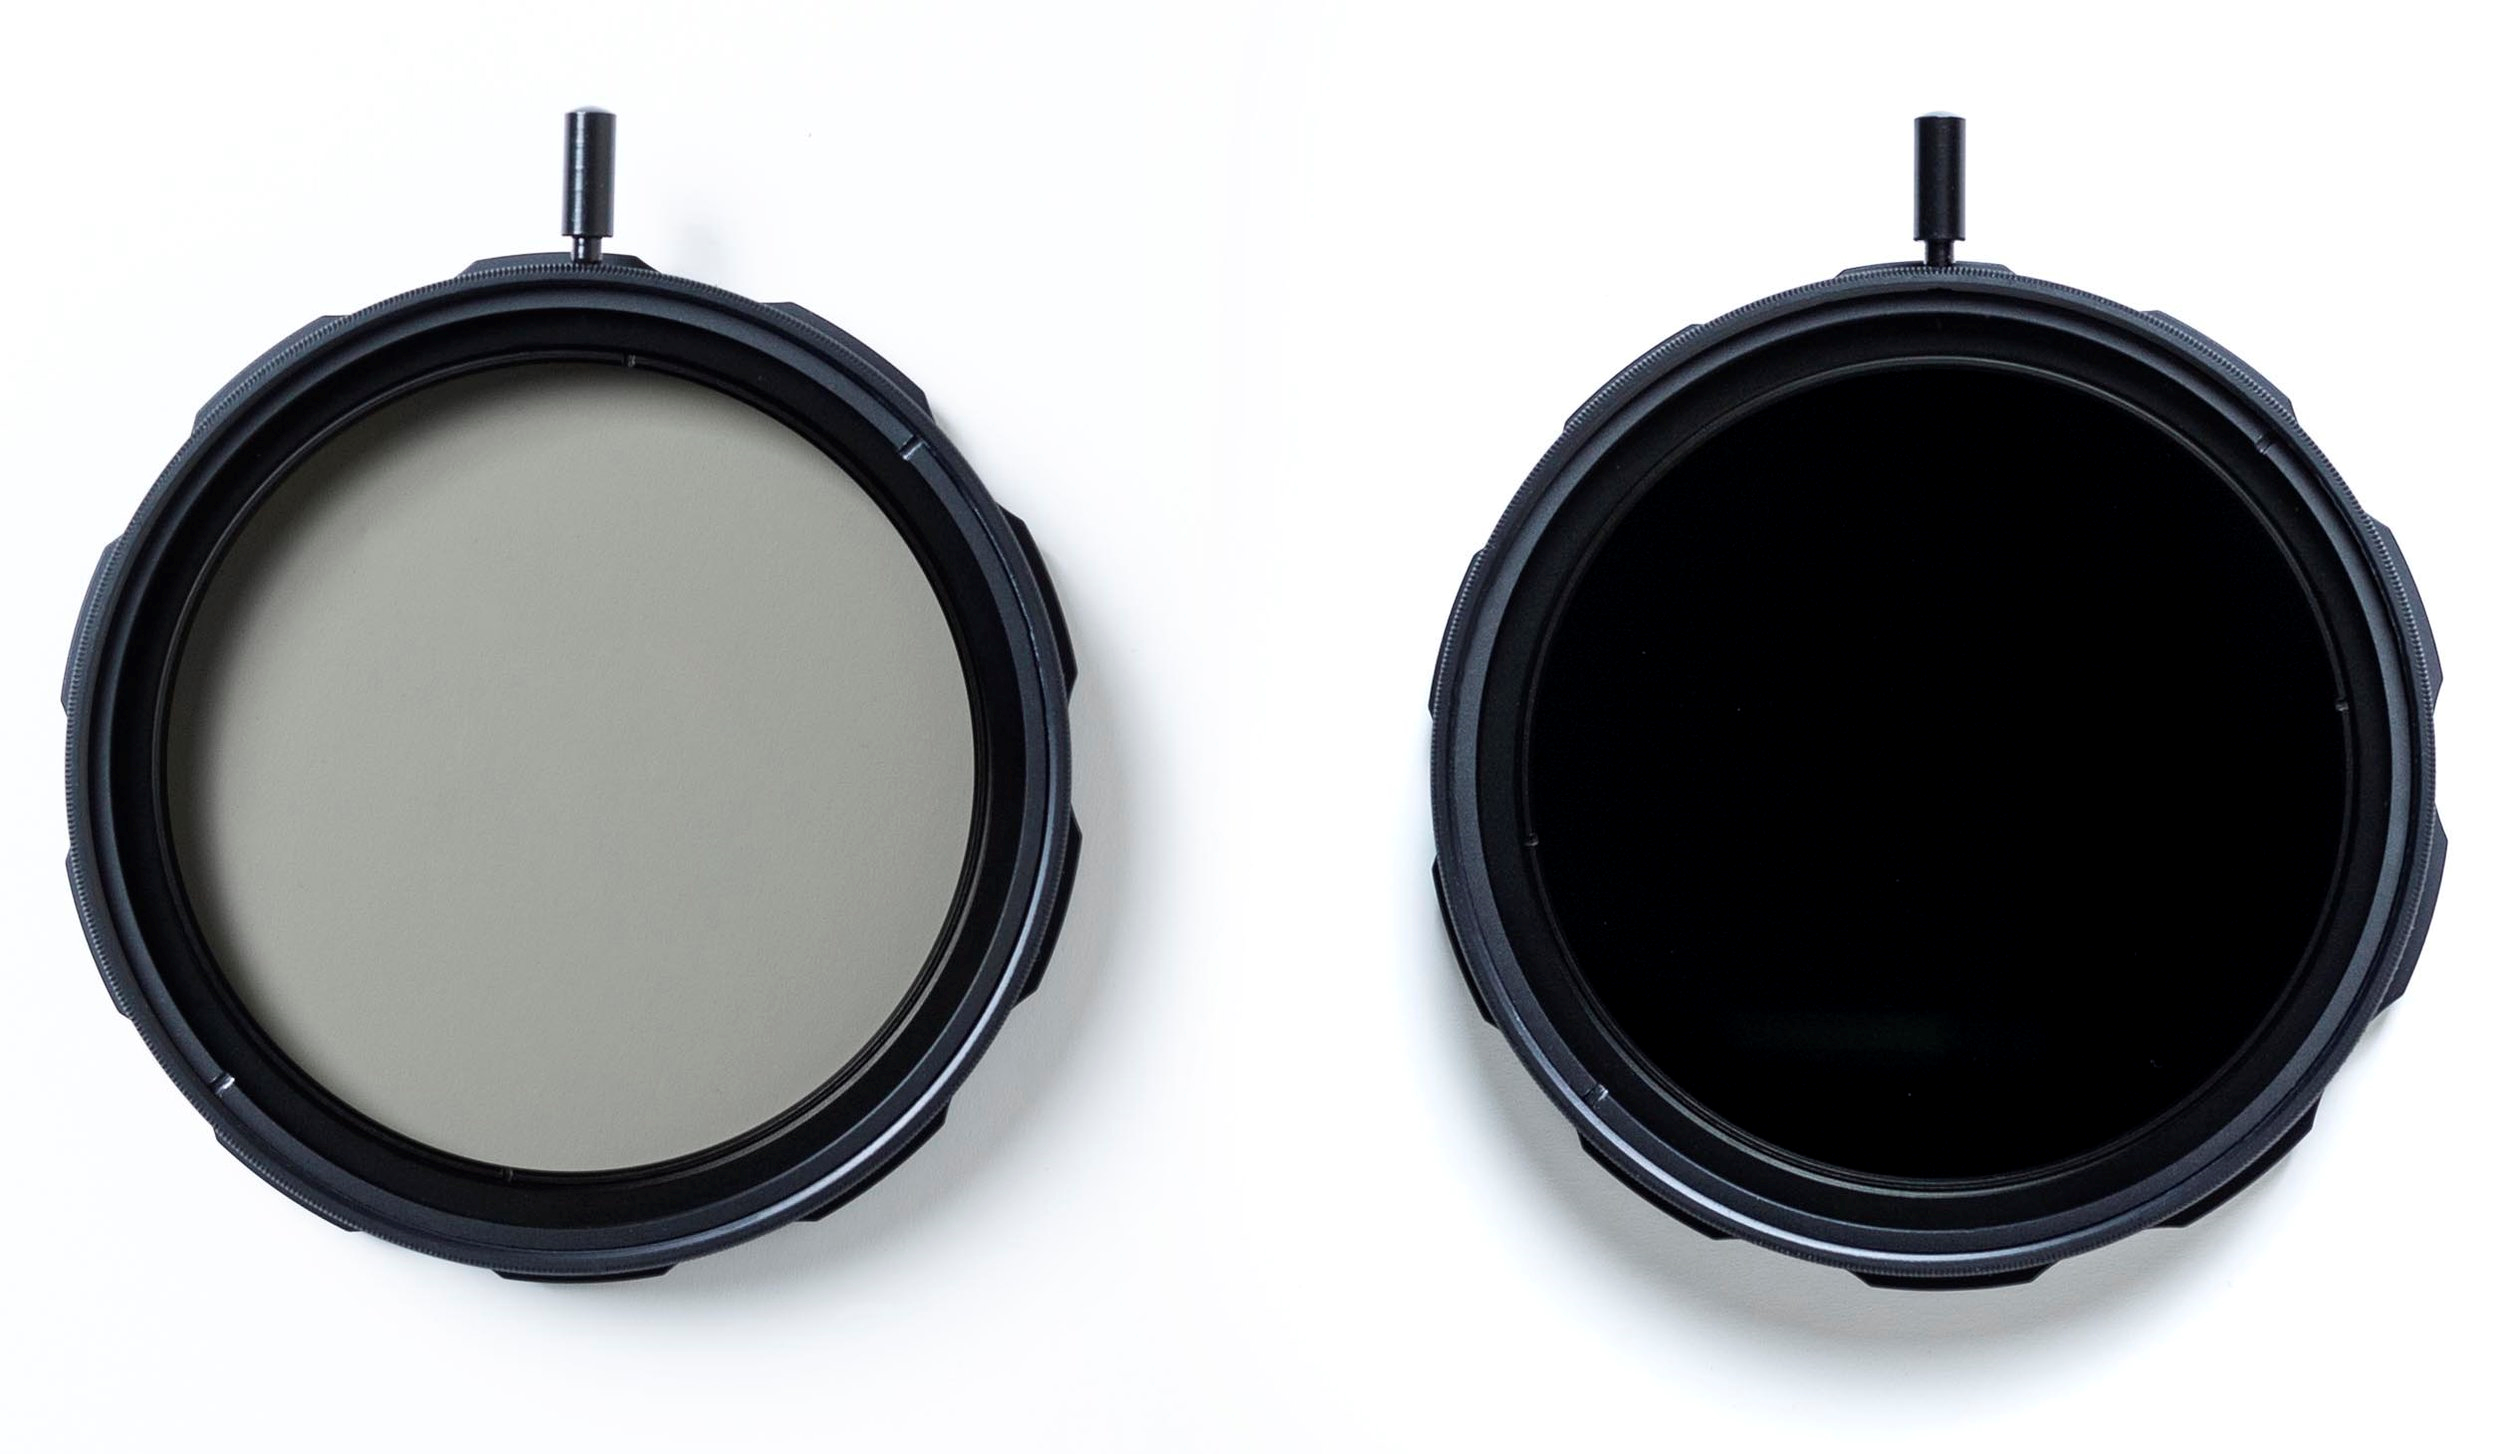 All new 77mm Multistop Filter - The Variable ND is a speciality filter designed to allow quick and continuously variable adjustment of light attenuation between approximately 1-6 stops, depending on conditions.